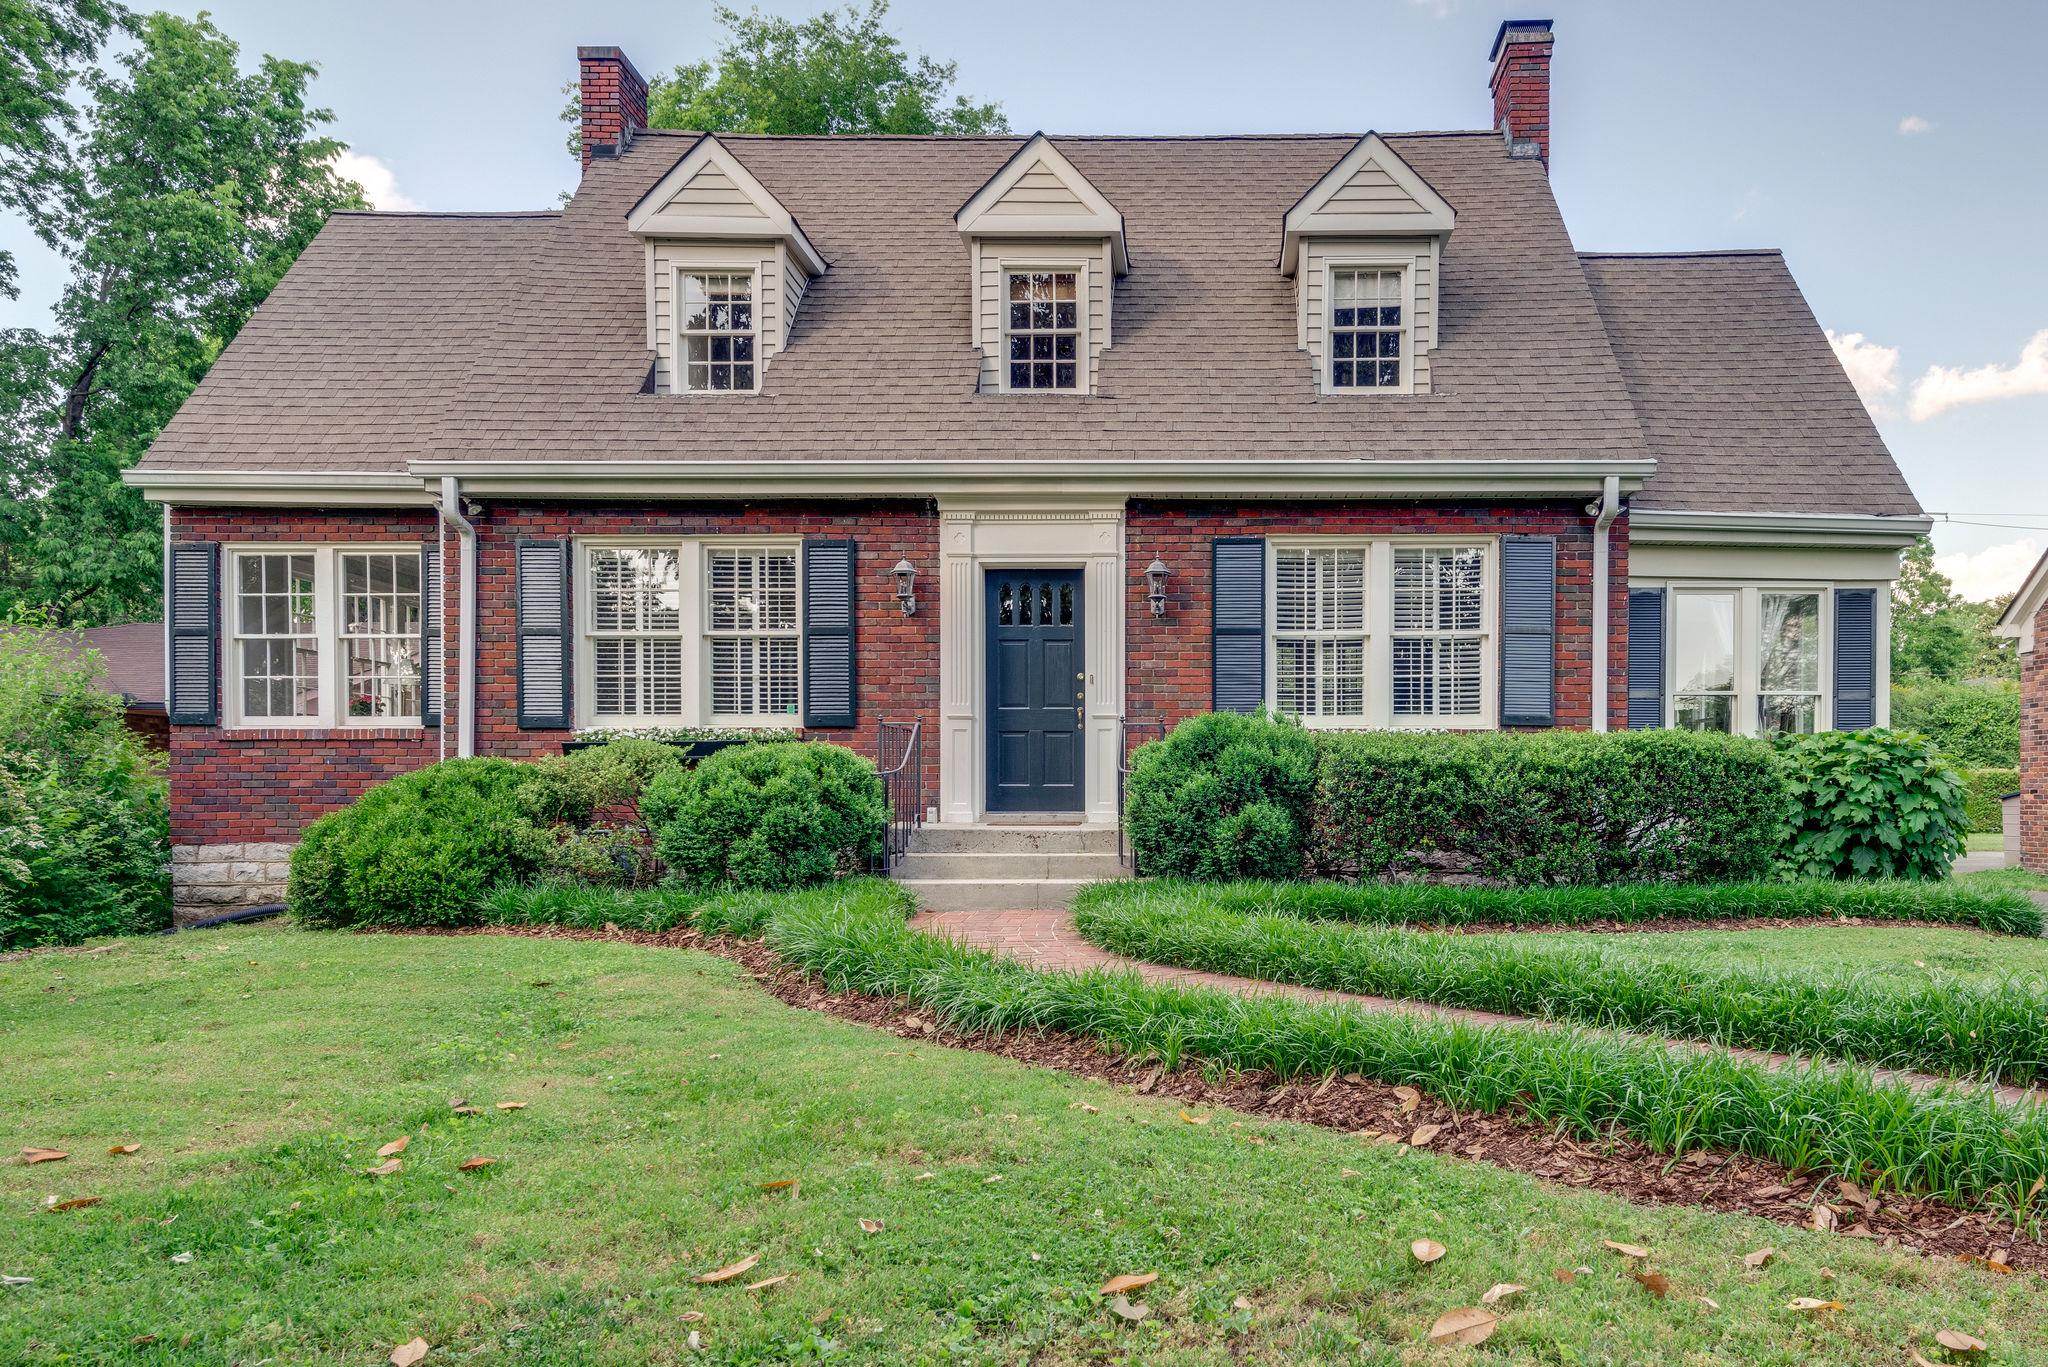 224 Harding Place, Belle Meade, Tennessee